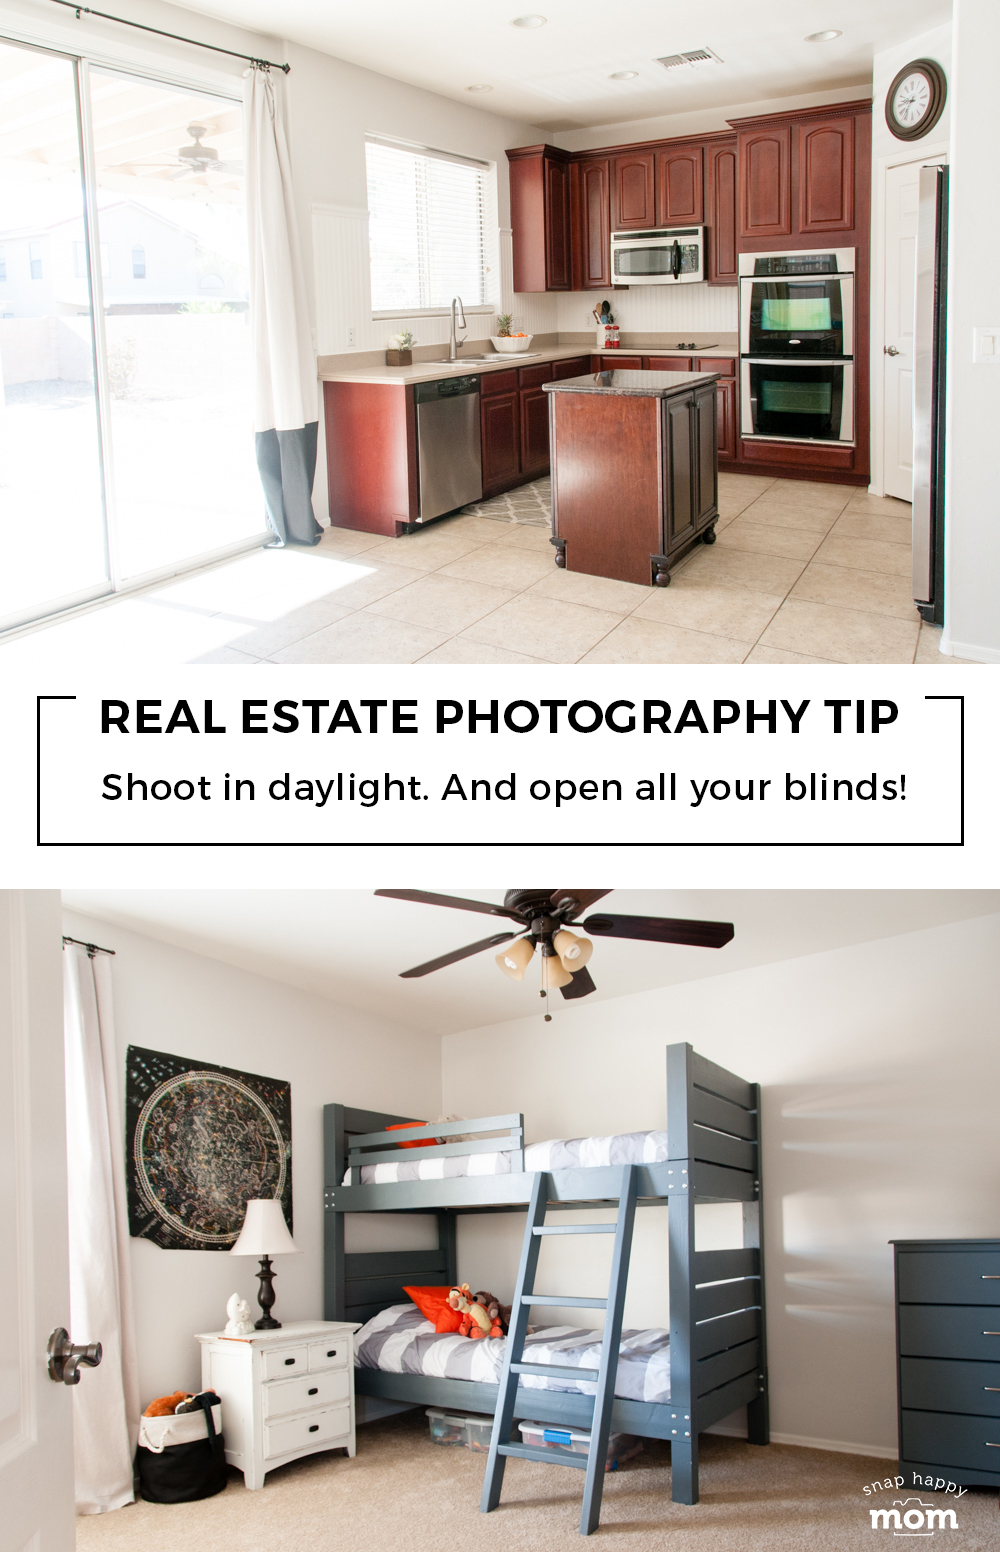 Real Estate Photography Tip: Use daylight for the most flattering light in your home.